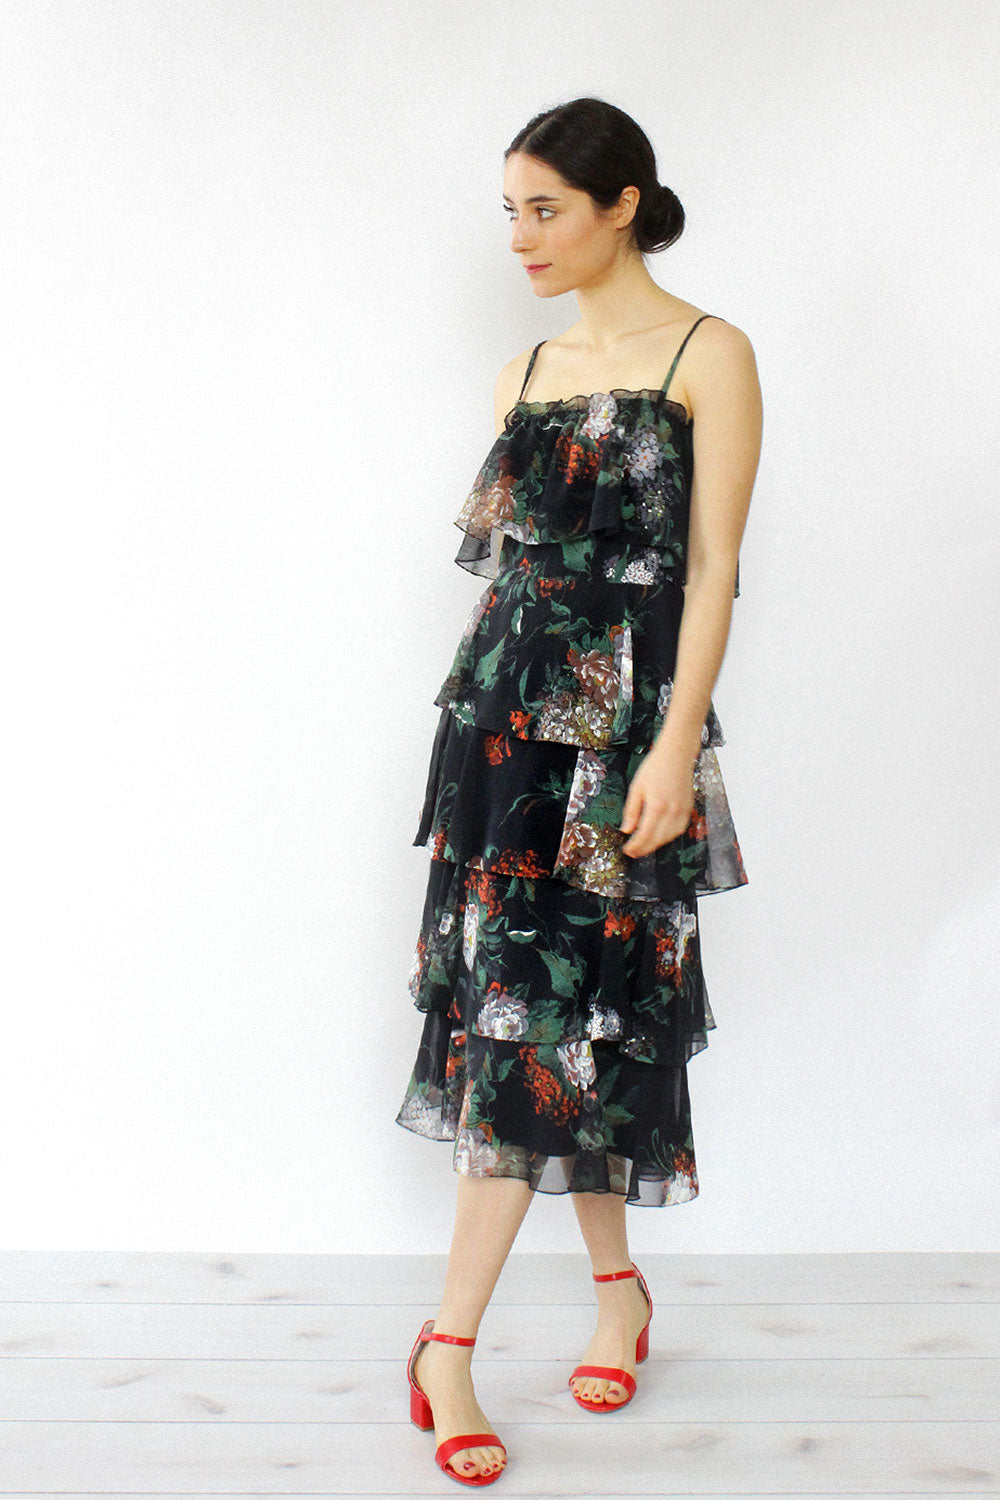 Dusk Floral Tiered Dress S